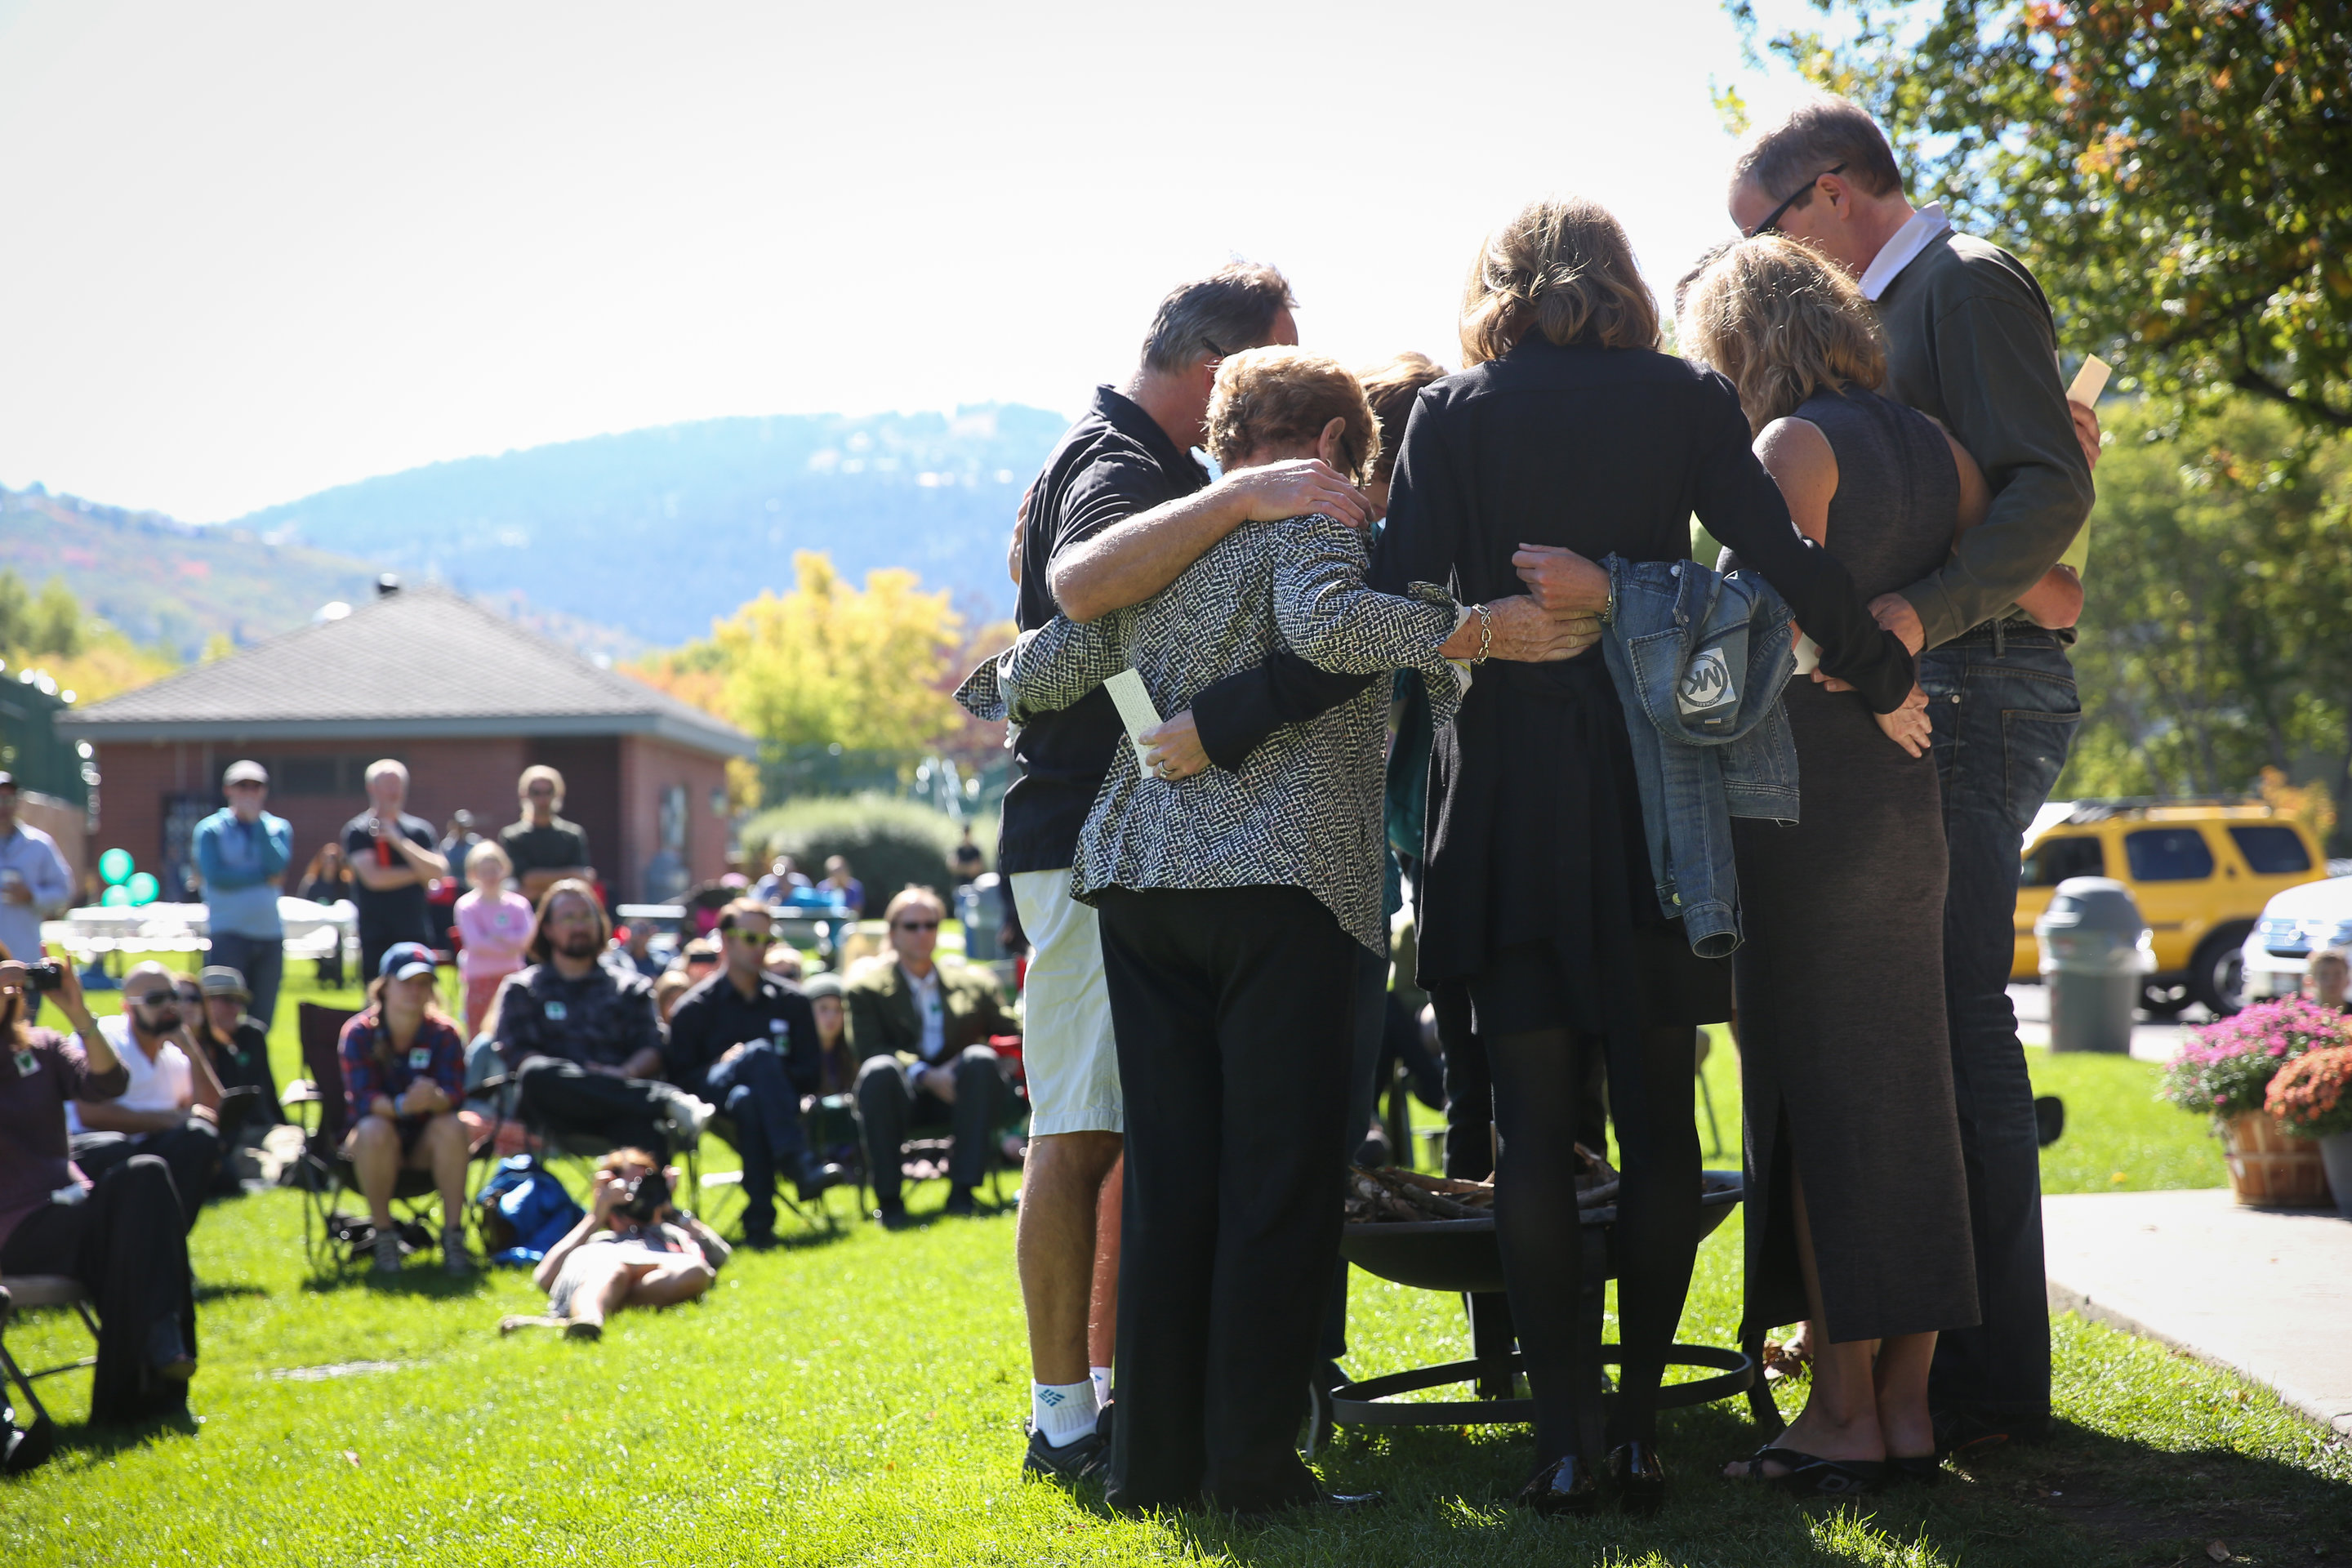 The family of Grant Seaver embraces during a memorial celebrating the 13-year-old boys life Saturday at City Park. Seaver was found dead in his home Sept. 11, and speakers at the memorial say they will miss his loving personality.